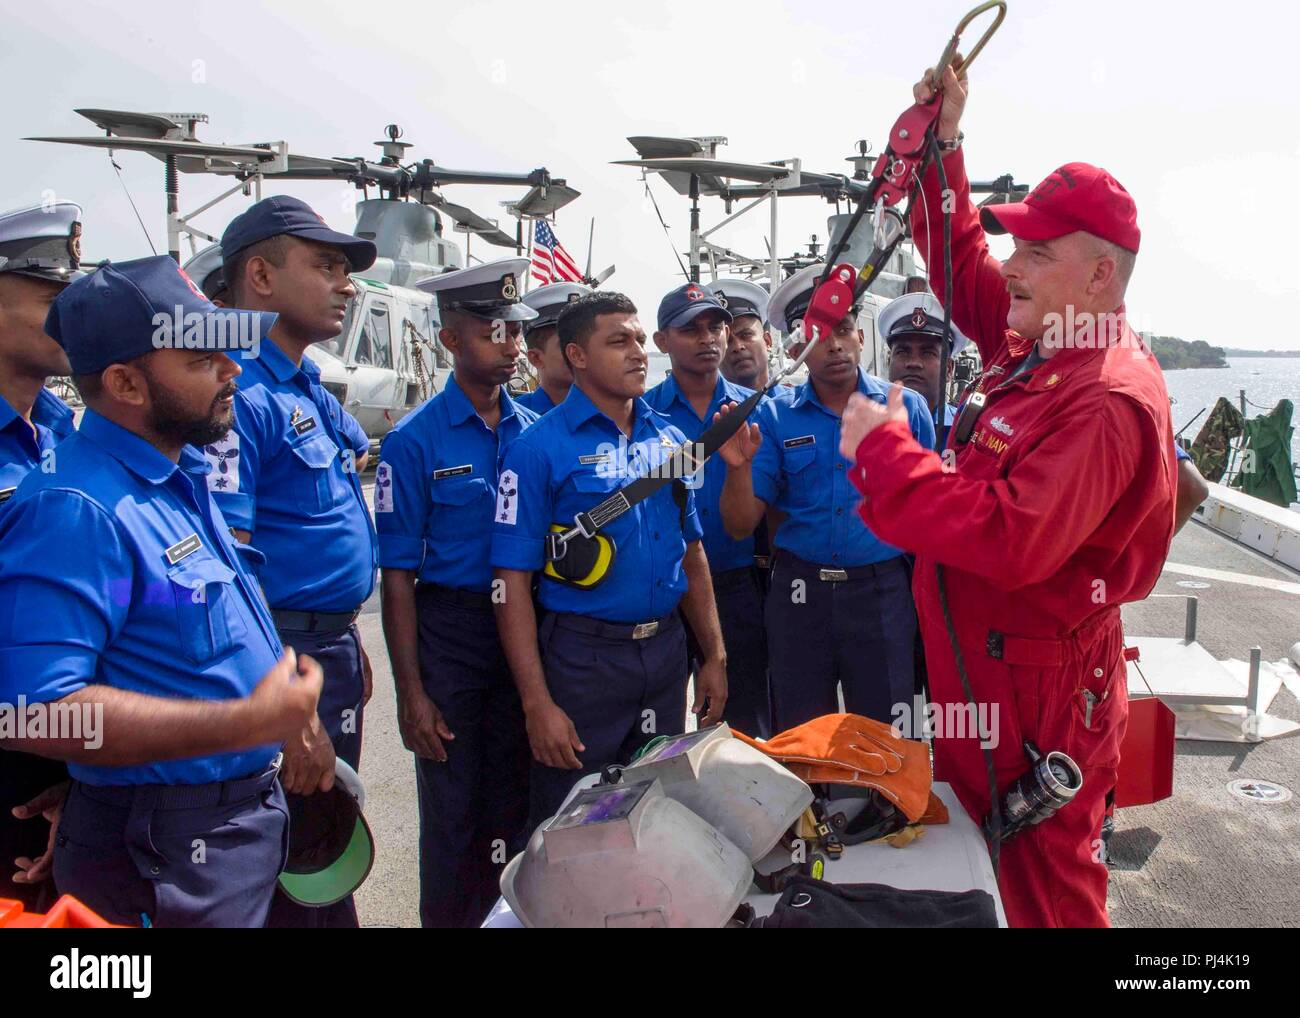 180826-N-PH222-0044 TRINCOMALEE, SRI LANKA (August 26, 2018) Senior Chief Damage Controlman, from Roanoke Rapids, N.C., conducts training on damage control equipment with Sri Lanka navy sailors on the flight deck of San Antonio-class amphibious transport dock USS Anchorage (LPD 23) during a regularly scheduled deployment of the Essex Amphibious Ready Group (ARG) and the 13th Marine Expeditionary Unit (MEU). Anchorage and the embarked Marines of the 13th MEU are conducting a theater security cooperation exercise with the Sri Lankan navy and Marines. Part of a growing U.S.-Sri Lanka naval partne - Stock Image